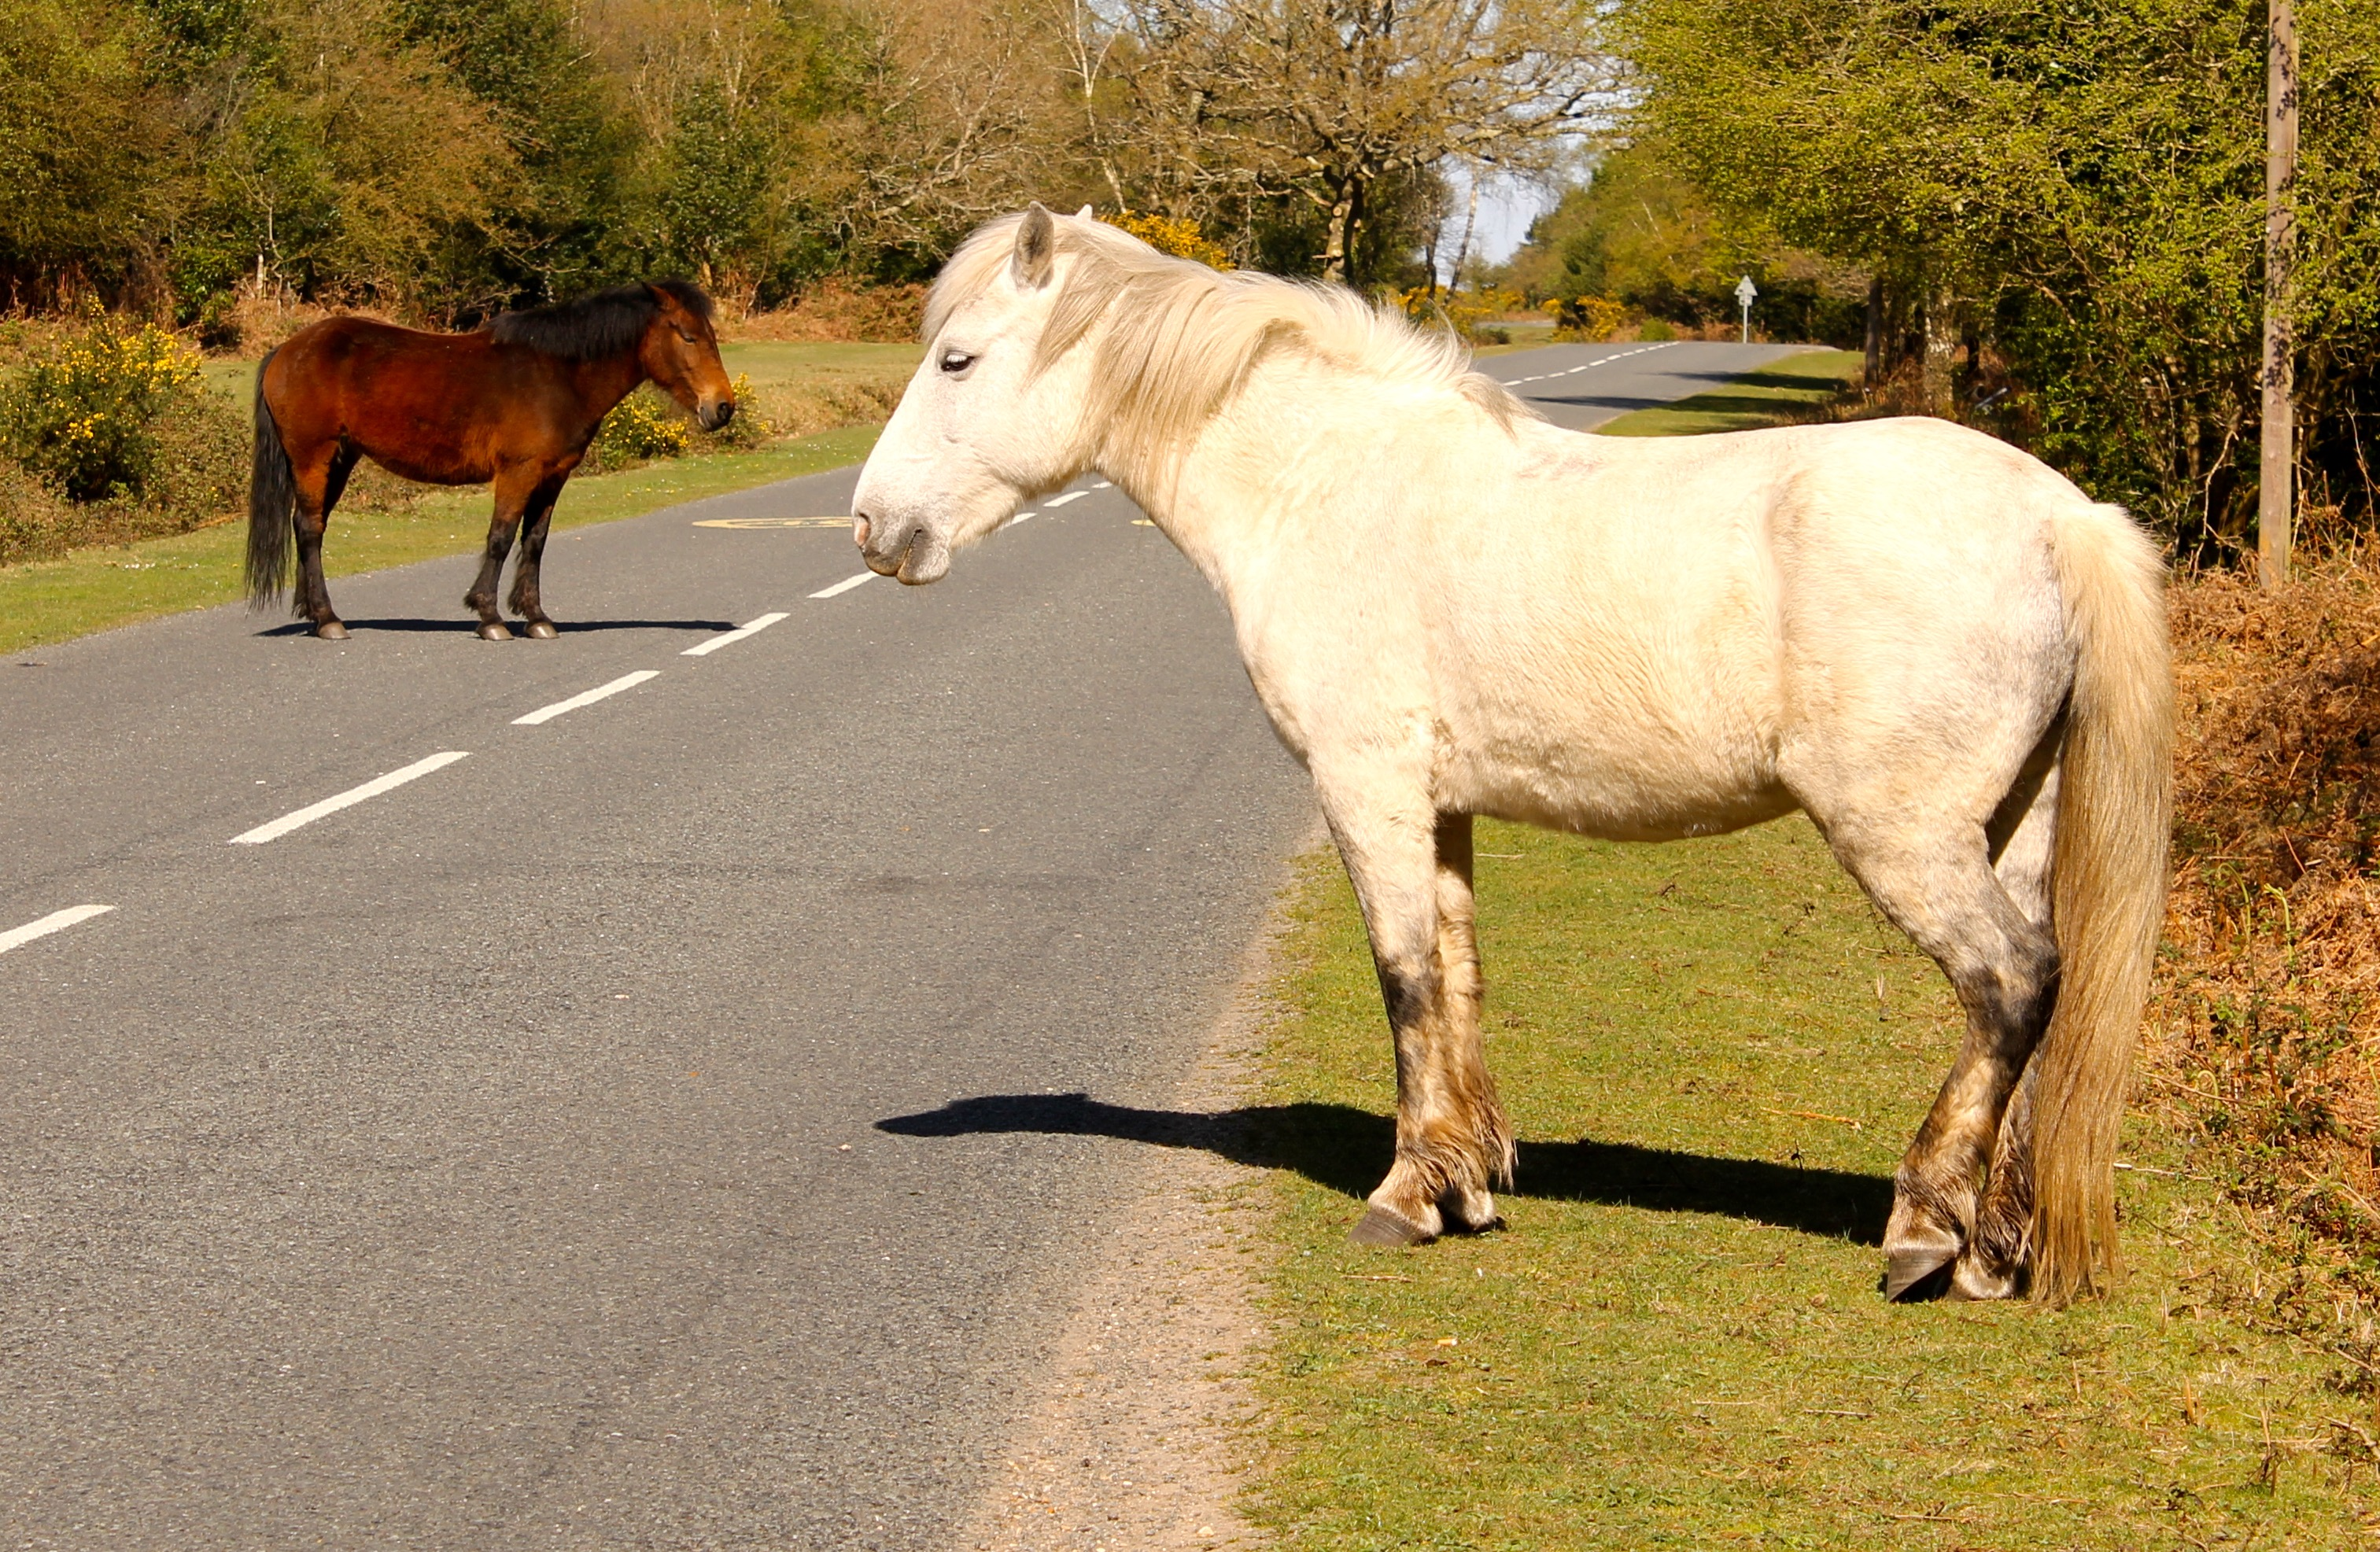 The 'wild' ponies use the New Forest road system at all times of the year.